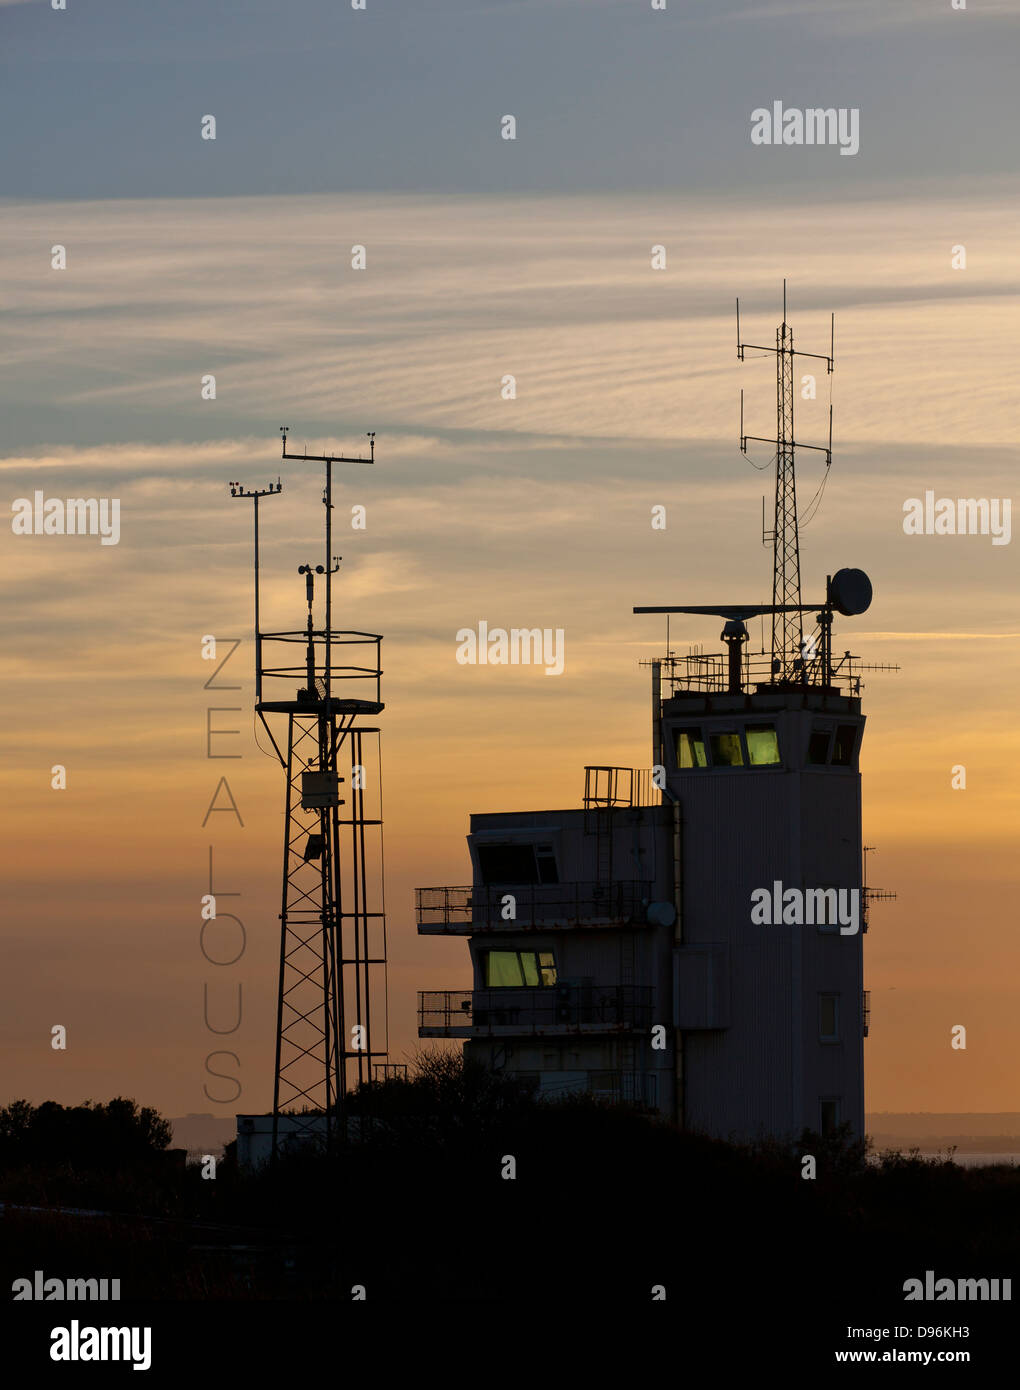 Roland Barthes inspired text and images. Zealous alongside semi-silhouette of coast guard radio tower. - Stock Image